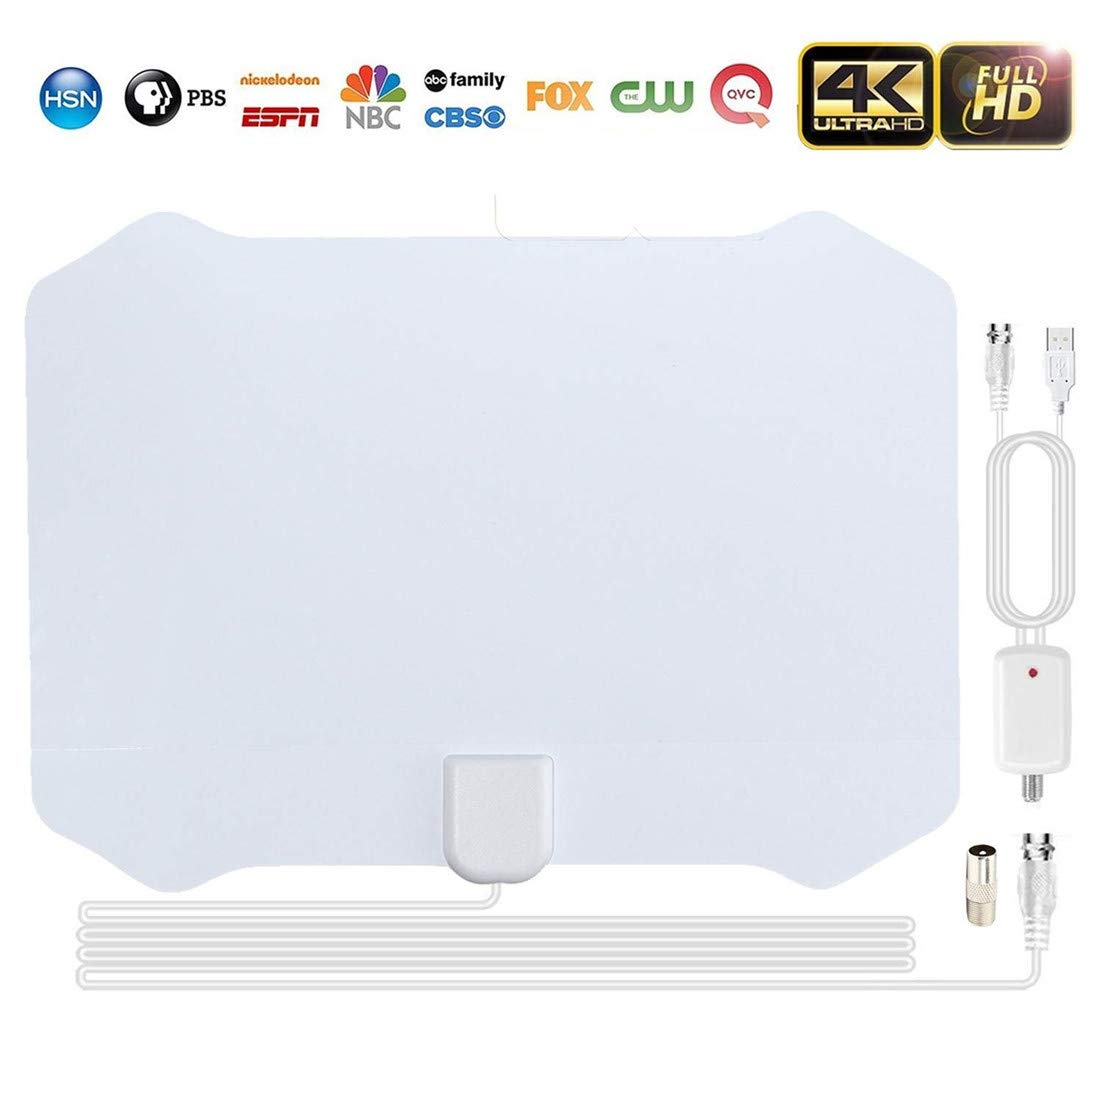 Indoor TV Antenna Digital 4K HD Aerial 2018 Upgraded Version 1080P 80+ Miles USB Powered Amplified Antenna with Signal Booster for All Types of Home Smart Television. (White) Beegoo